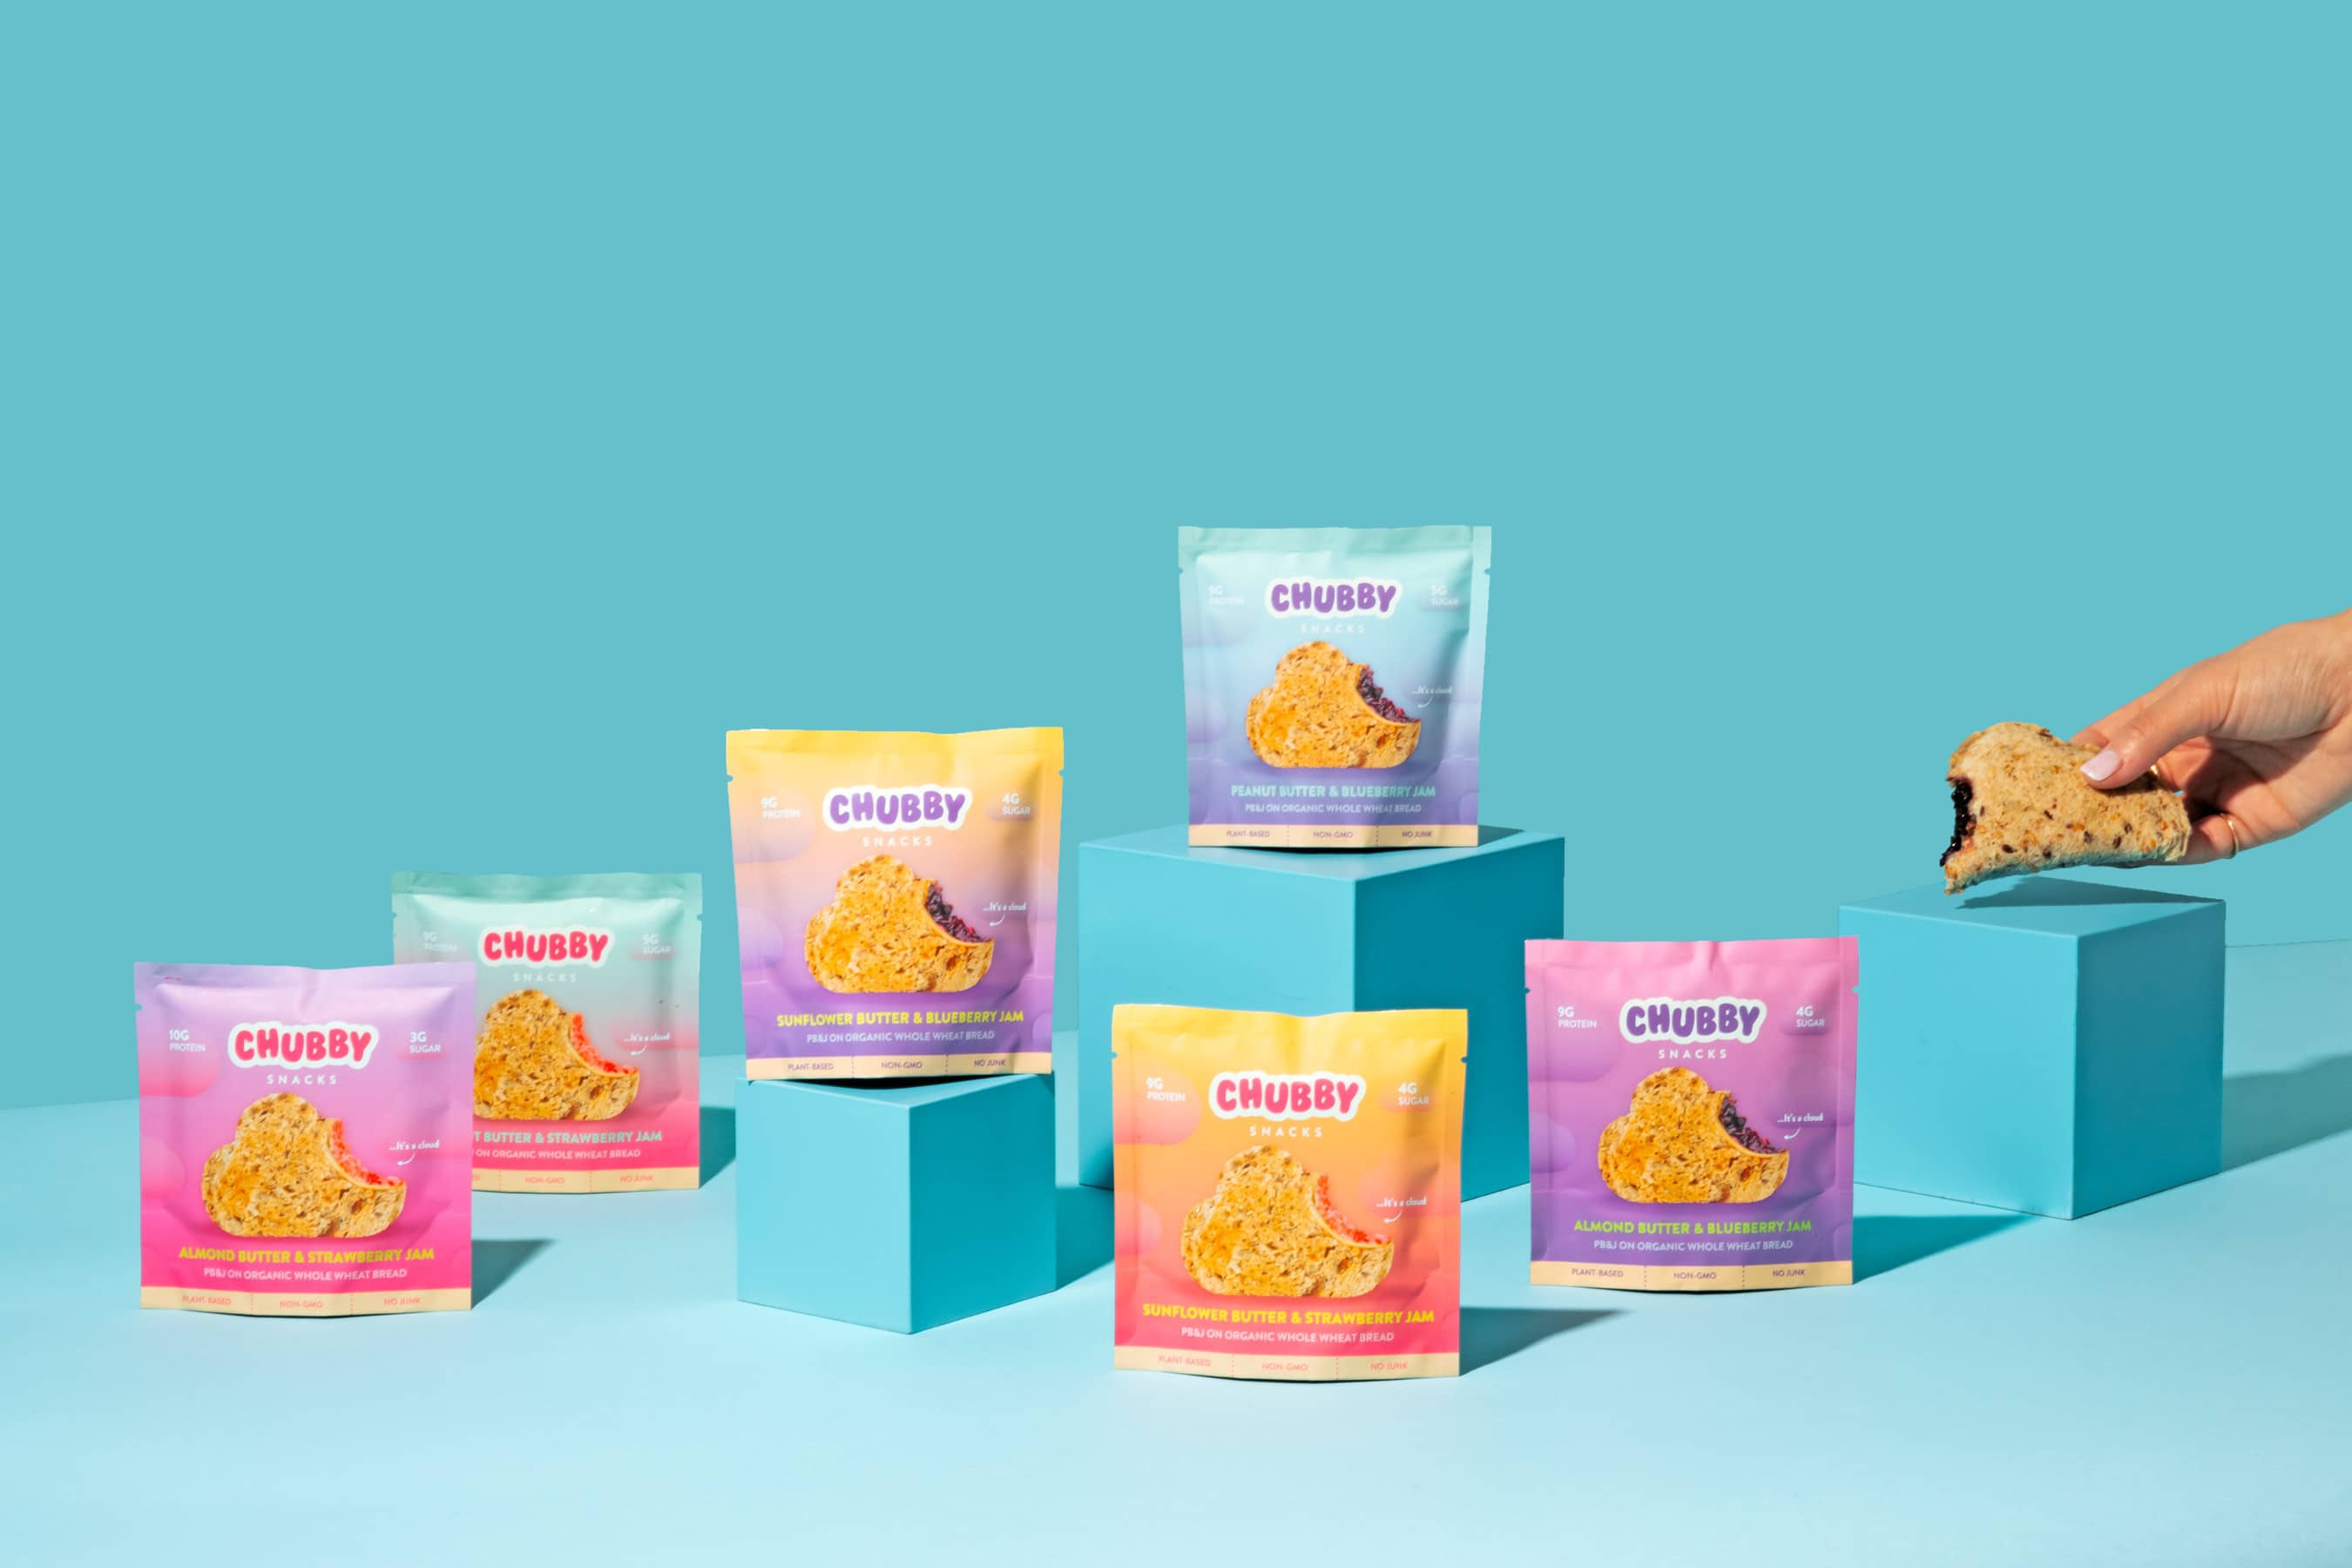 Chubby Snacks Announces Launch of New Shape and Flavors